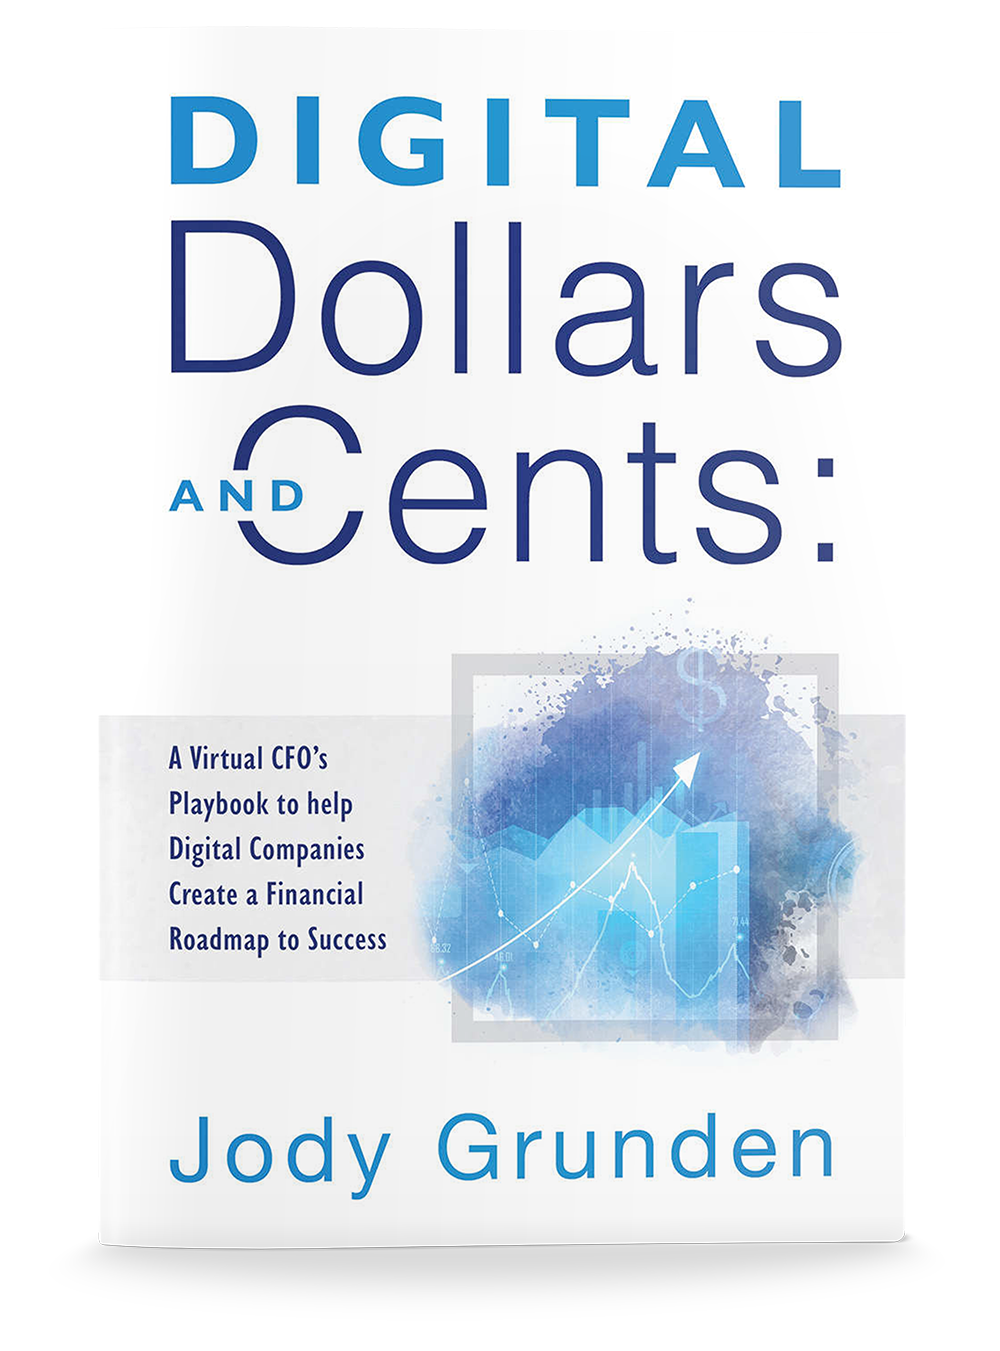 digital_dollars_and_cents-jody_grunden